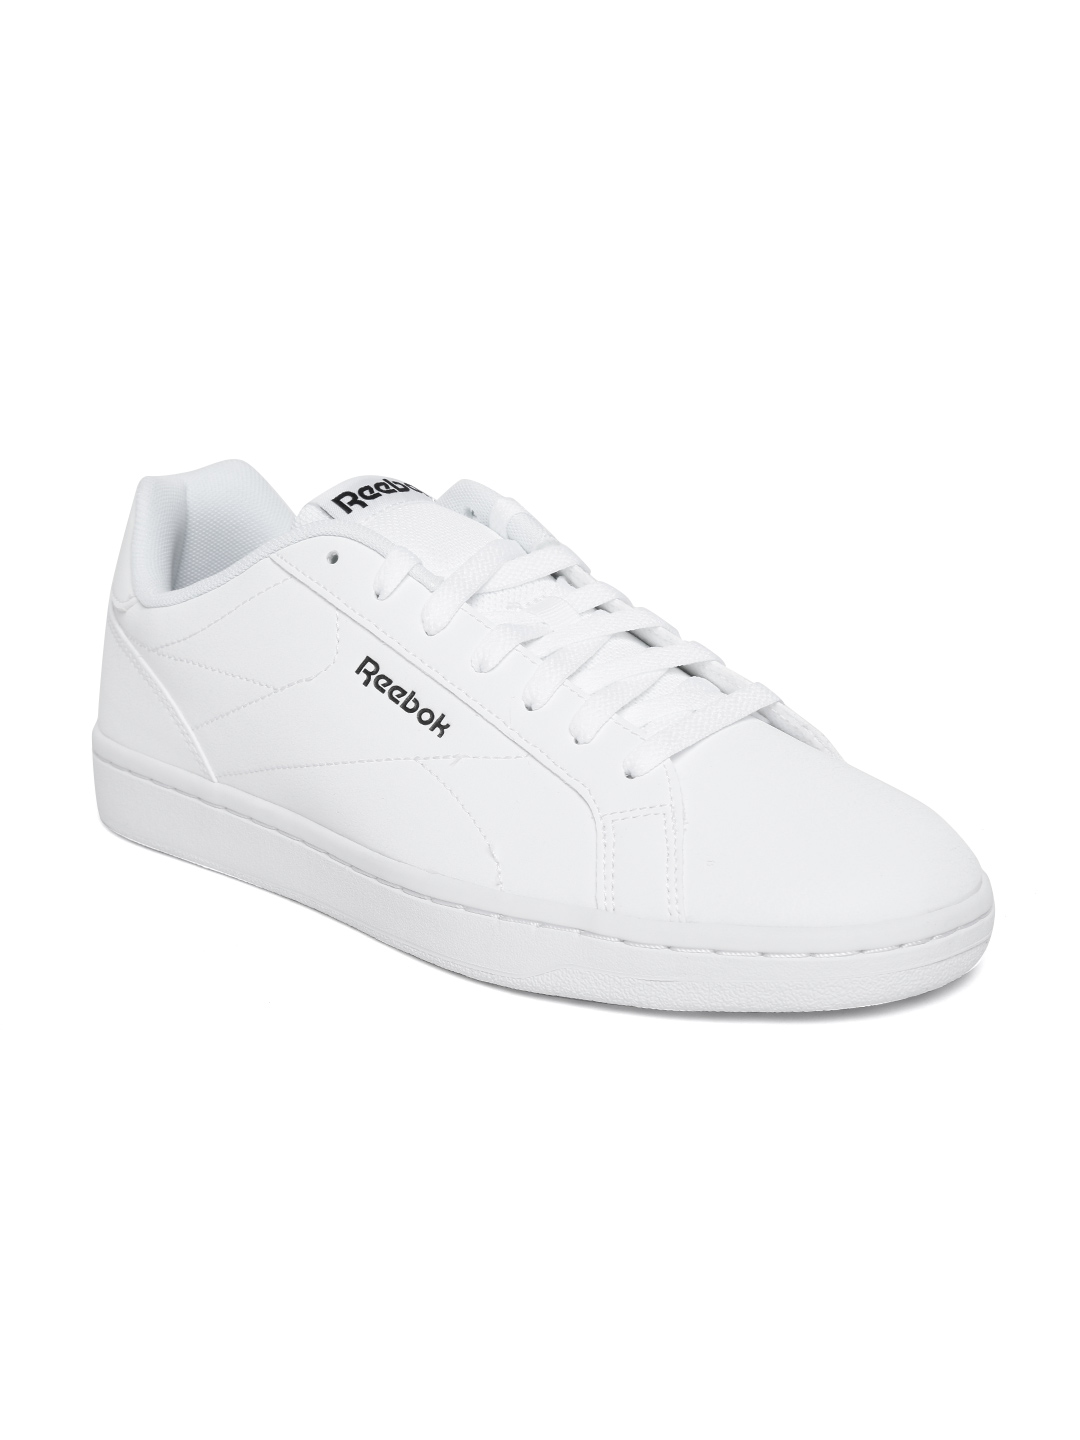 6c1a236a8f0 Buy Reebok Classic Men White Royal Complete CLN Sneakers - Casual ...